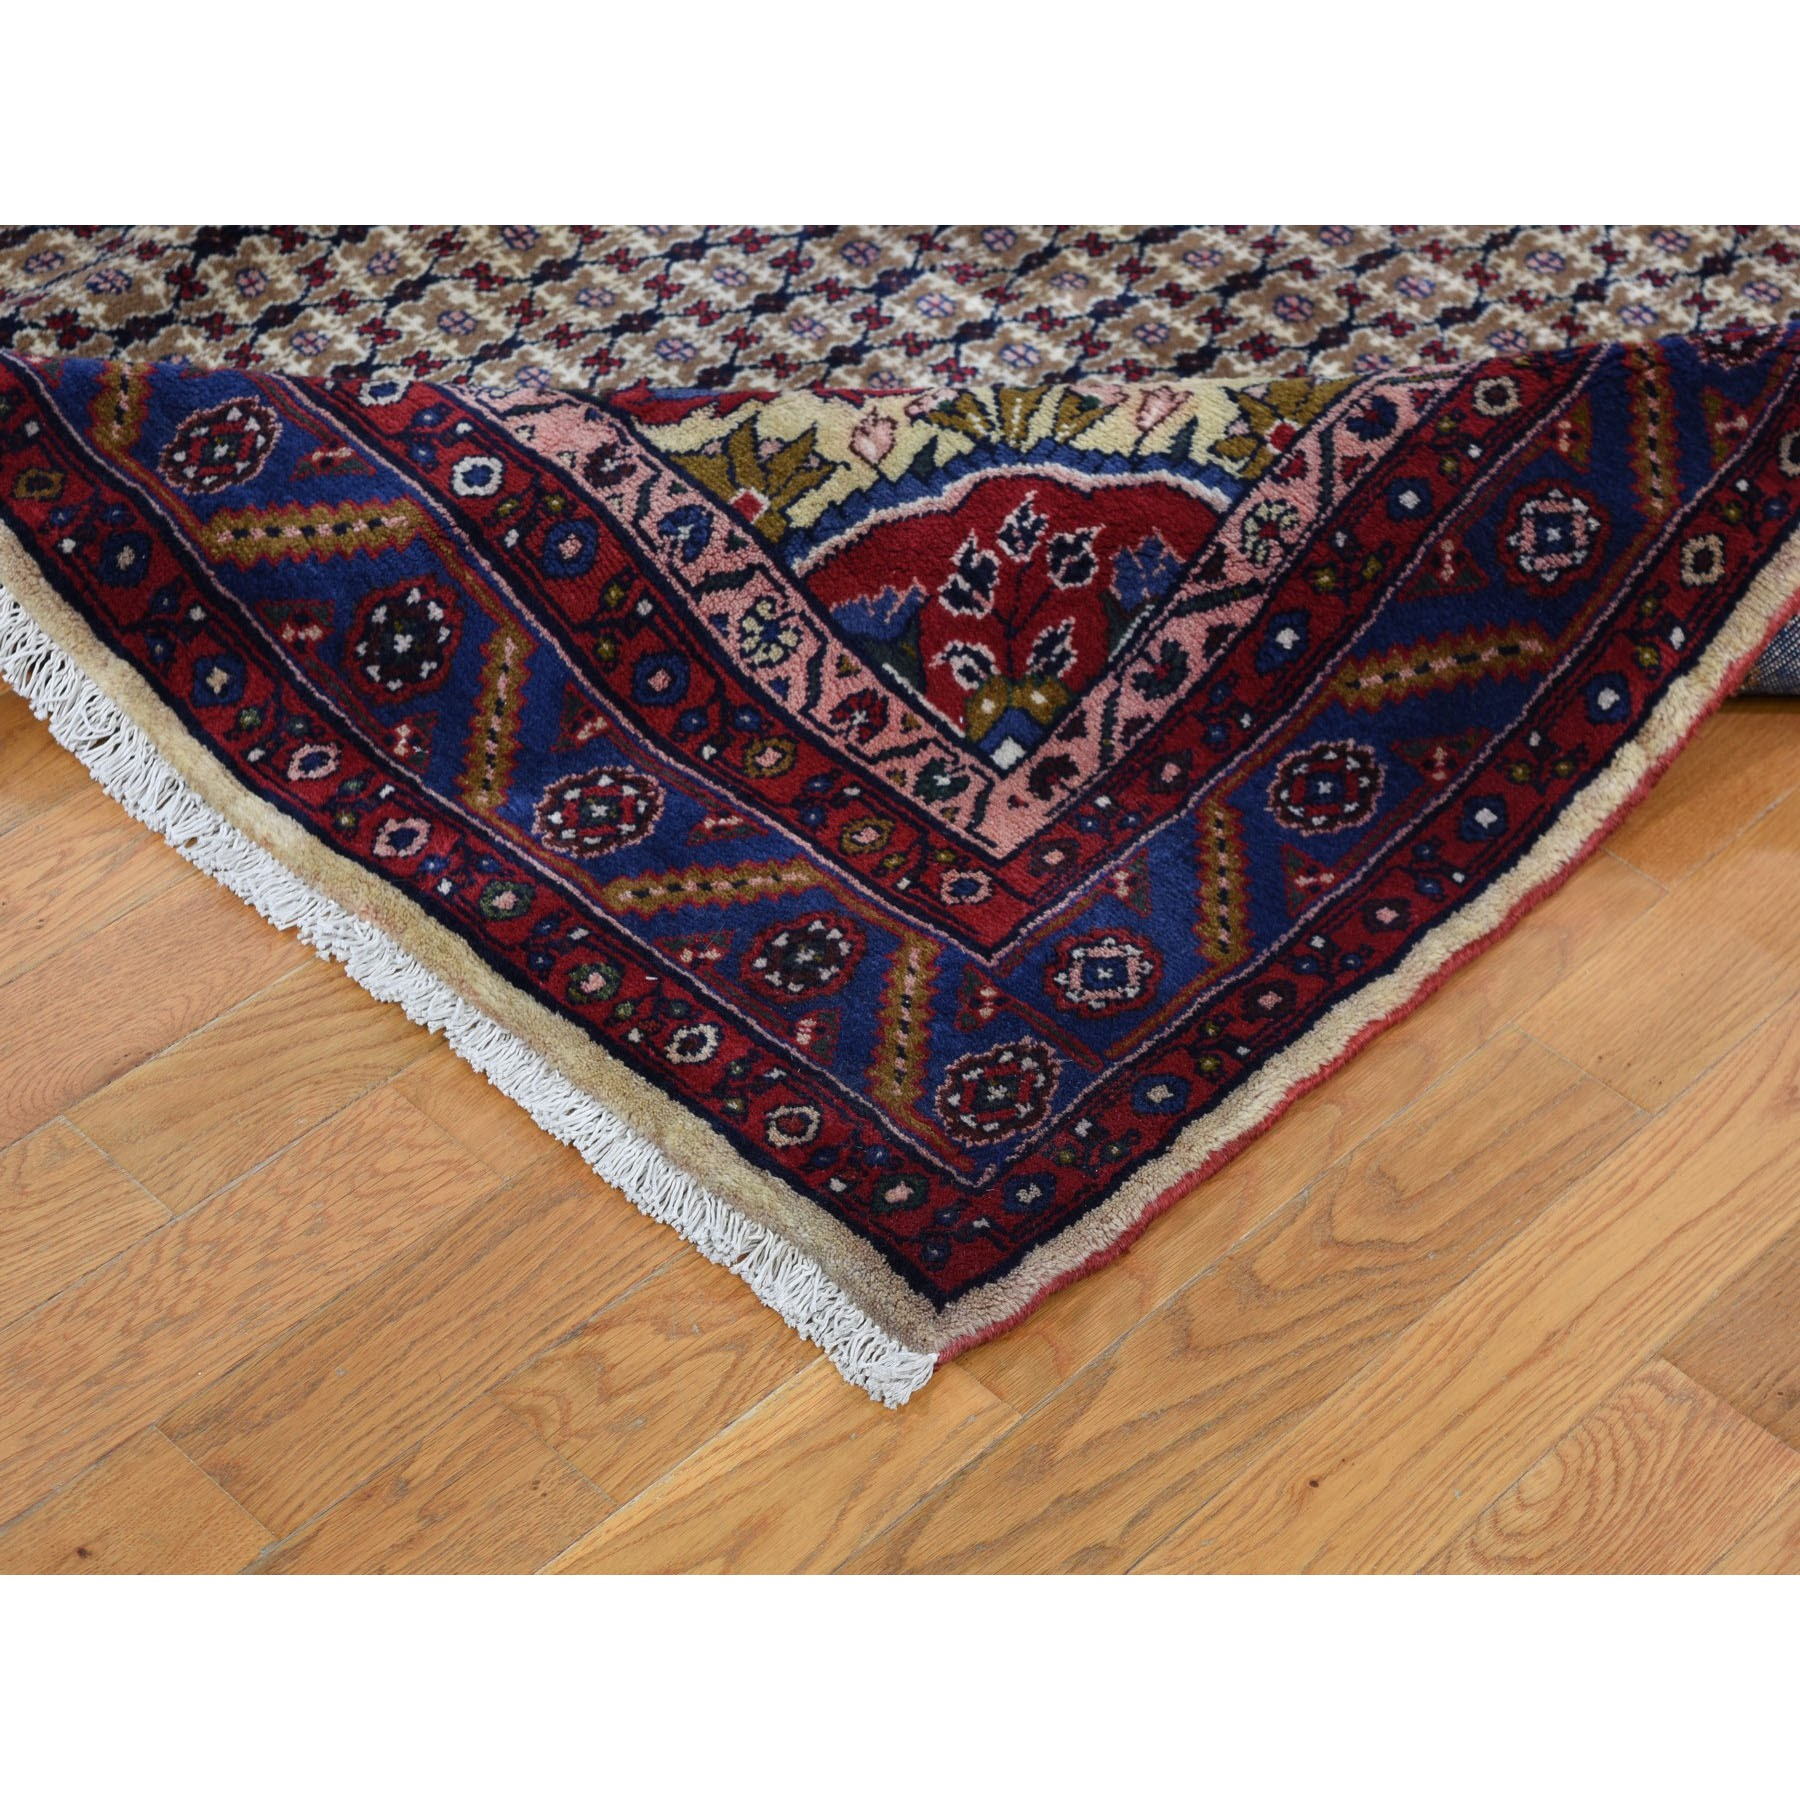 7-3 x10-6  Brown New Persian Hamadan Pure Wool Camel Hair Hand Knotted Oriental Rug